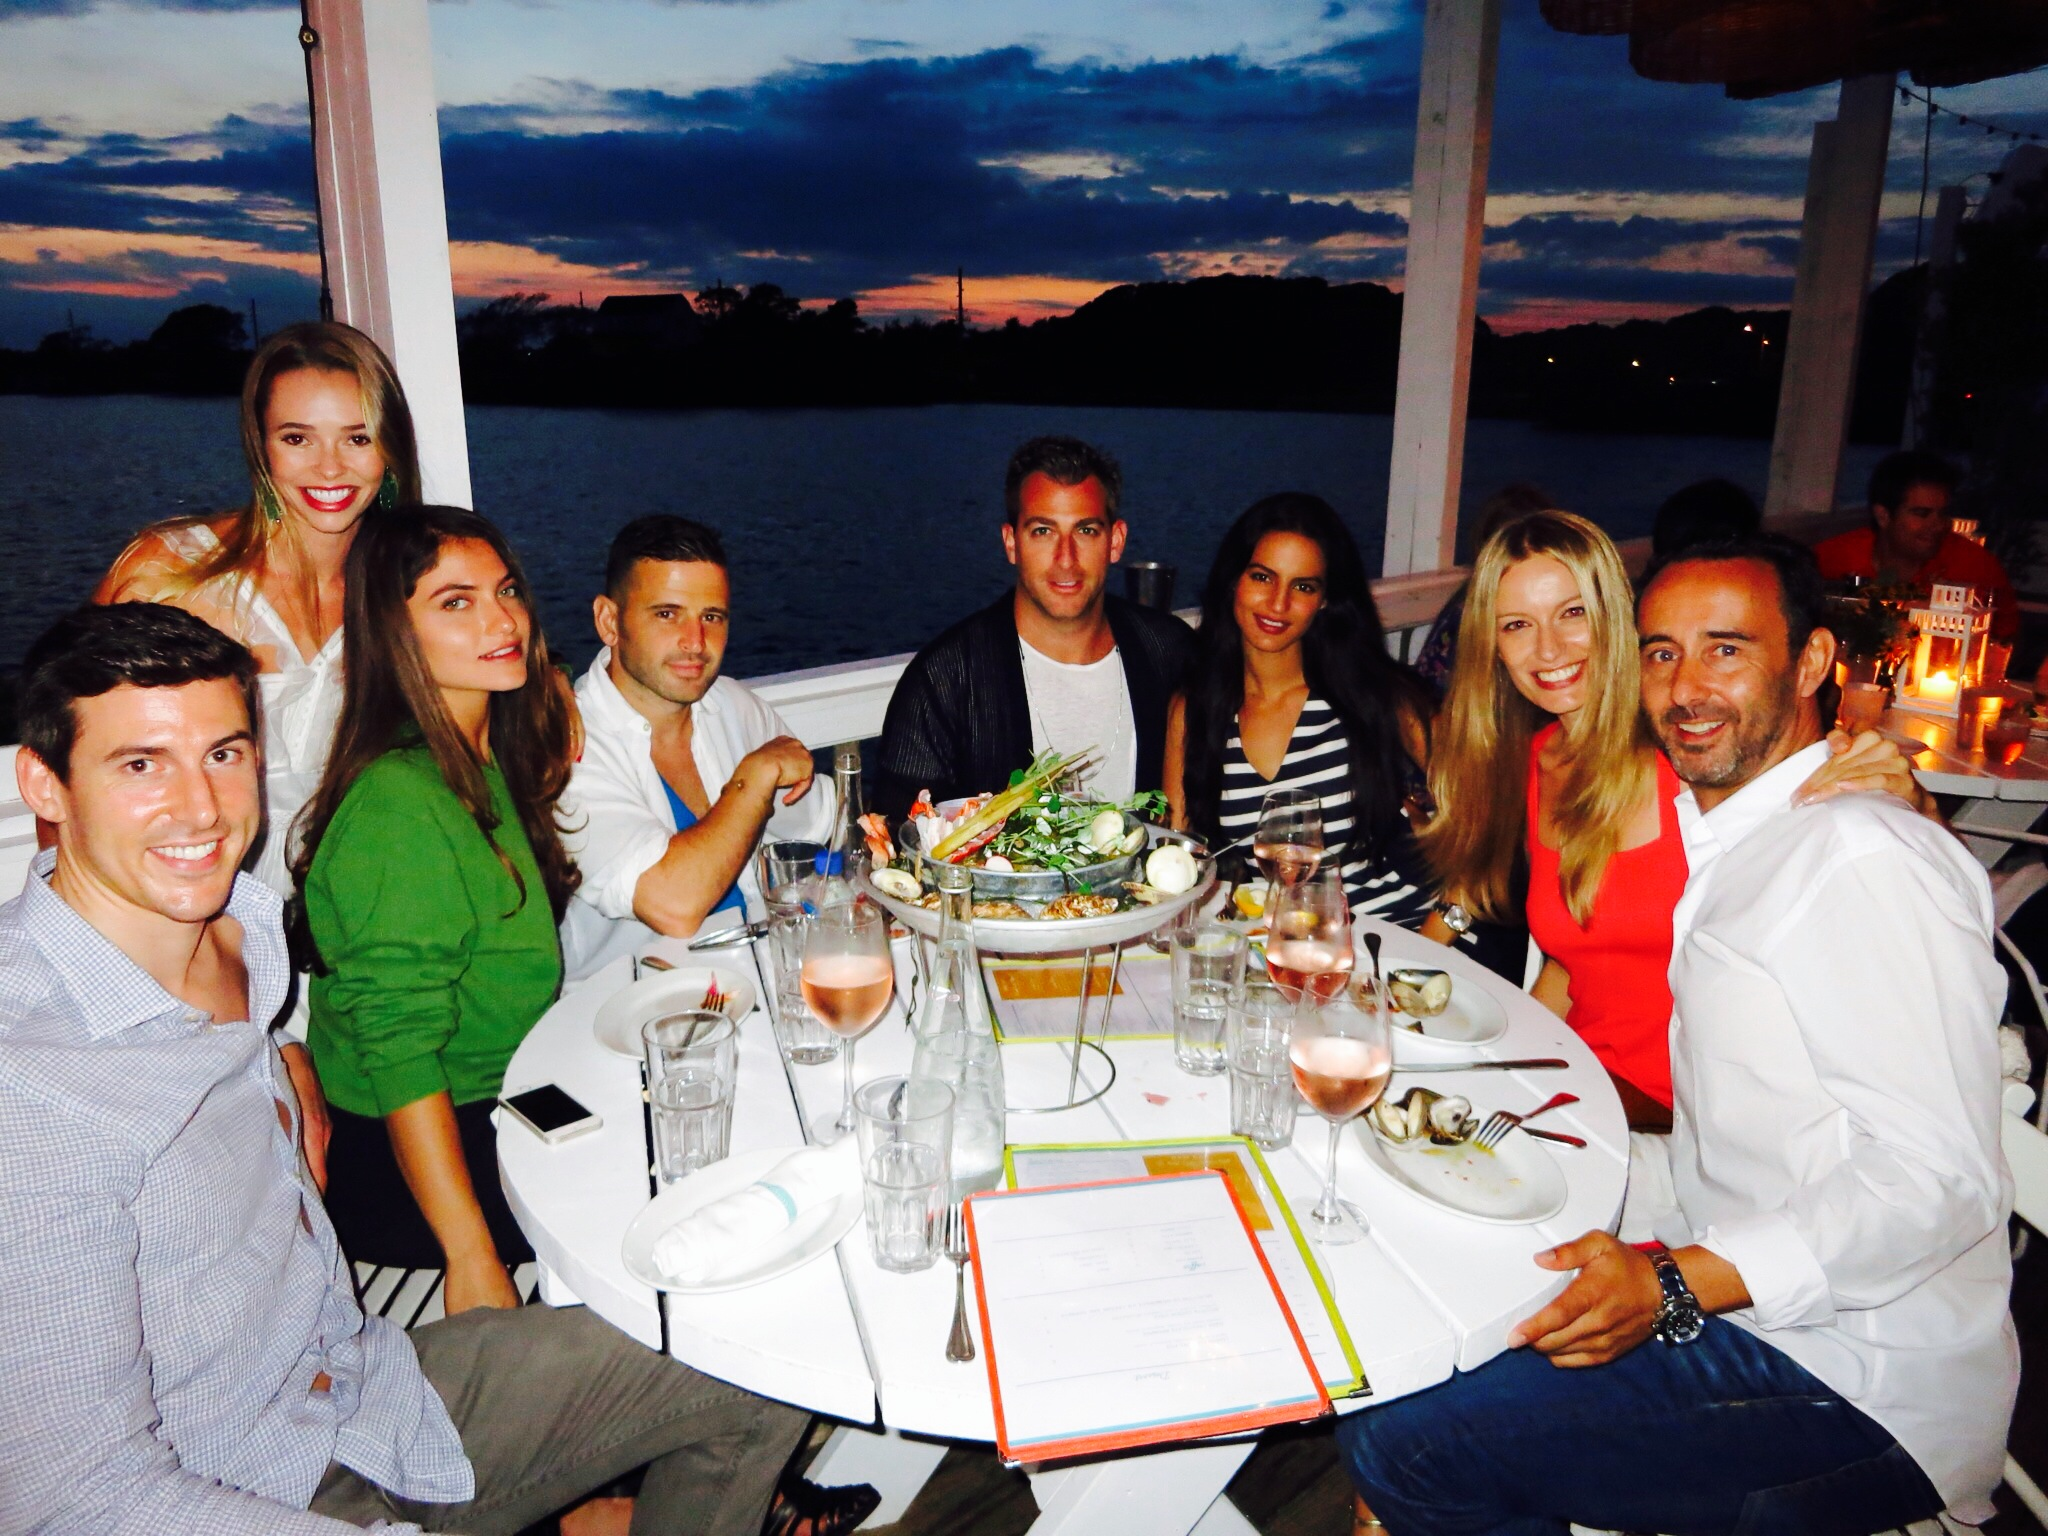 """Amazing dinner with the best company @thesurflodgemtk in Montauk."